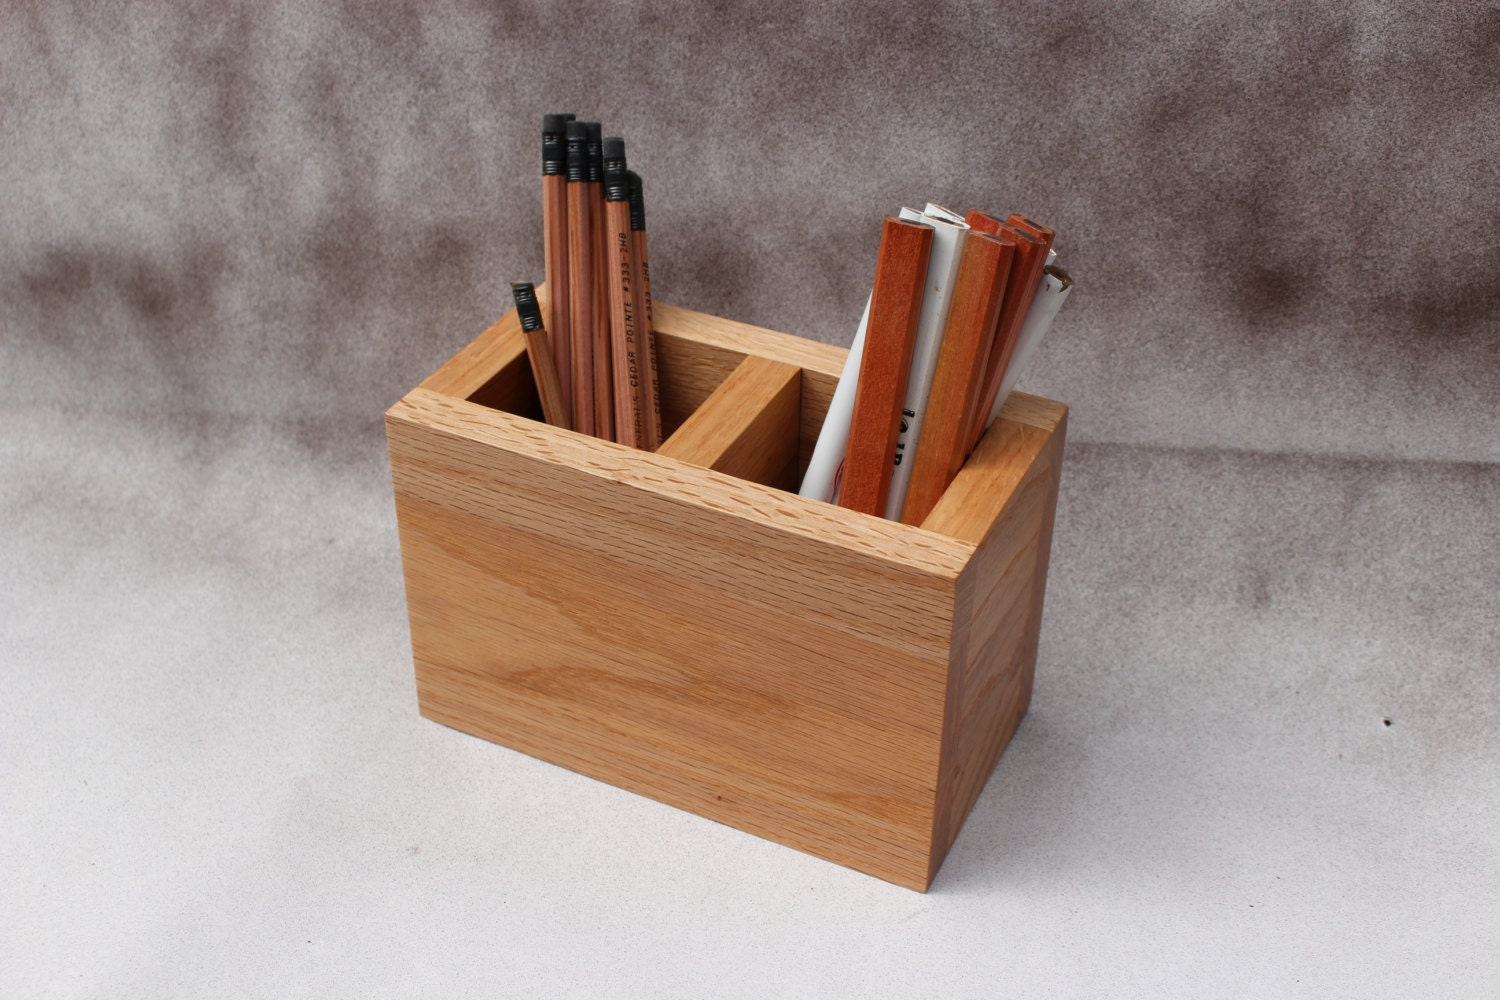 Wood desk organizer office desk caddy pencil holder - Wood desk organizer ...